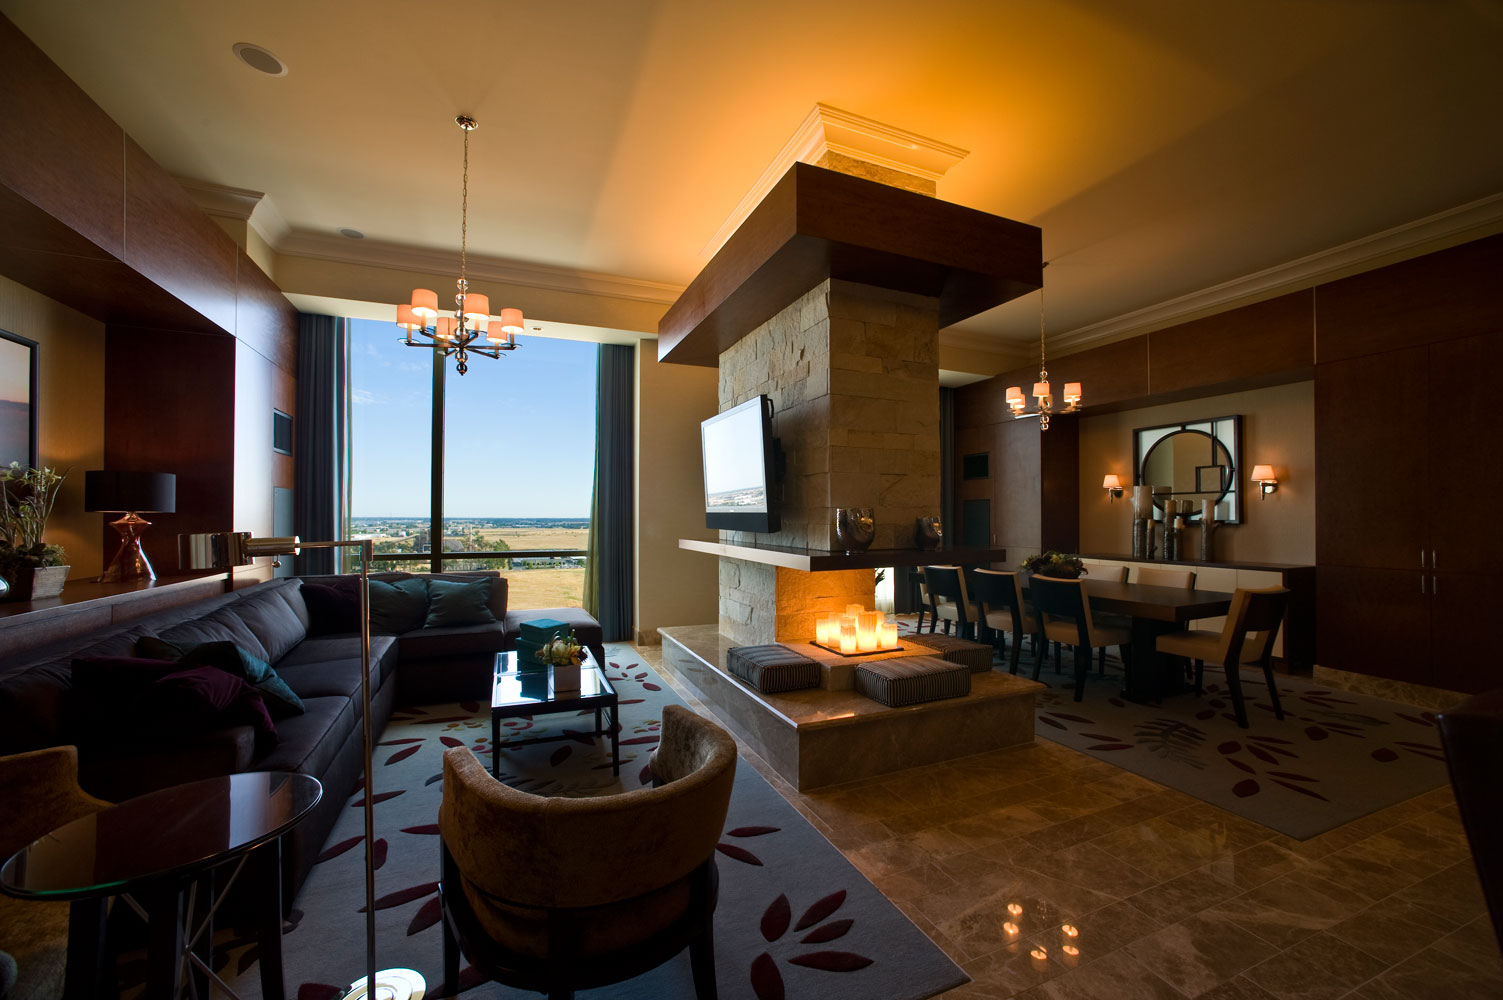 Thunder valley hotel coupons